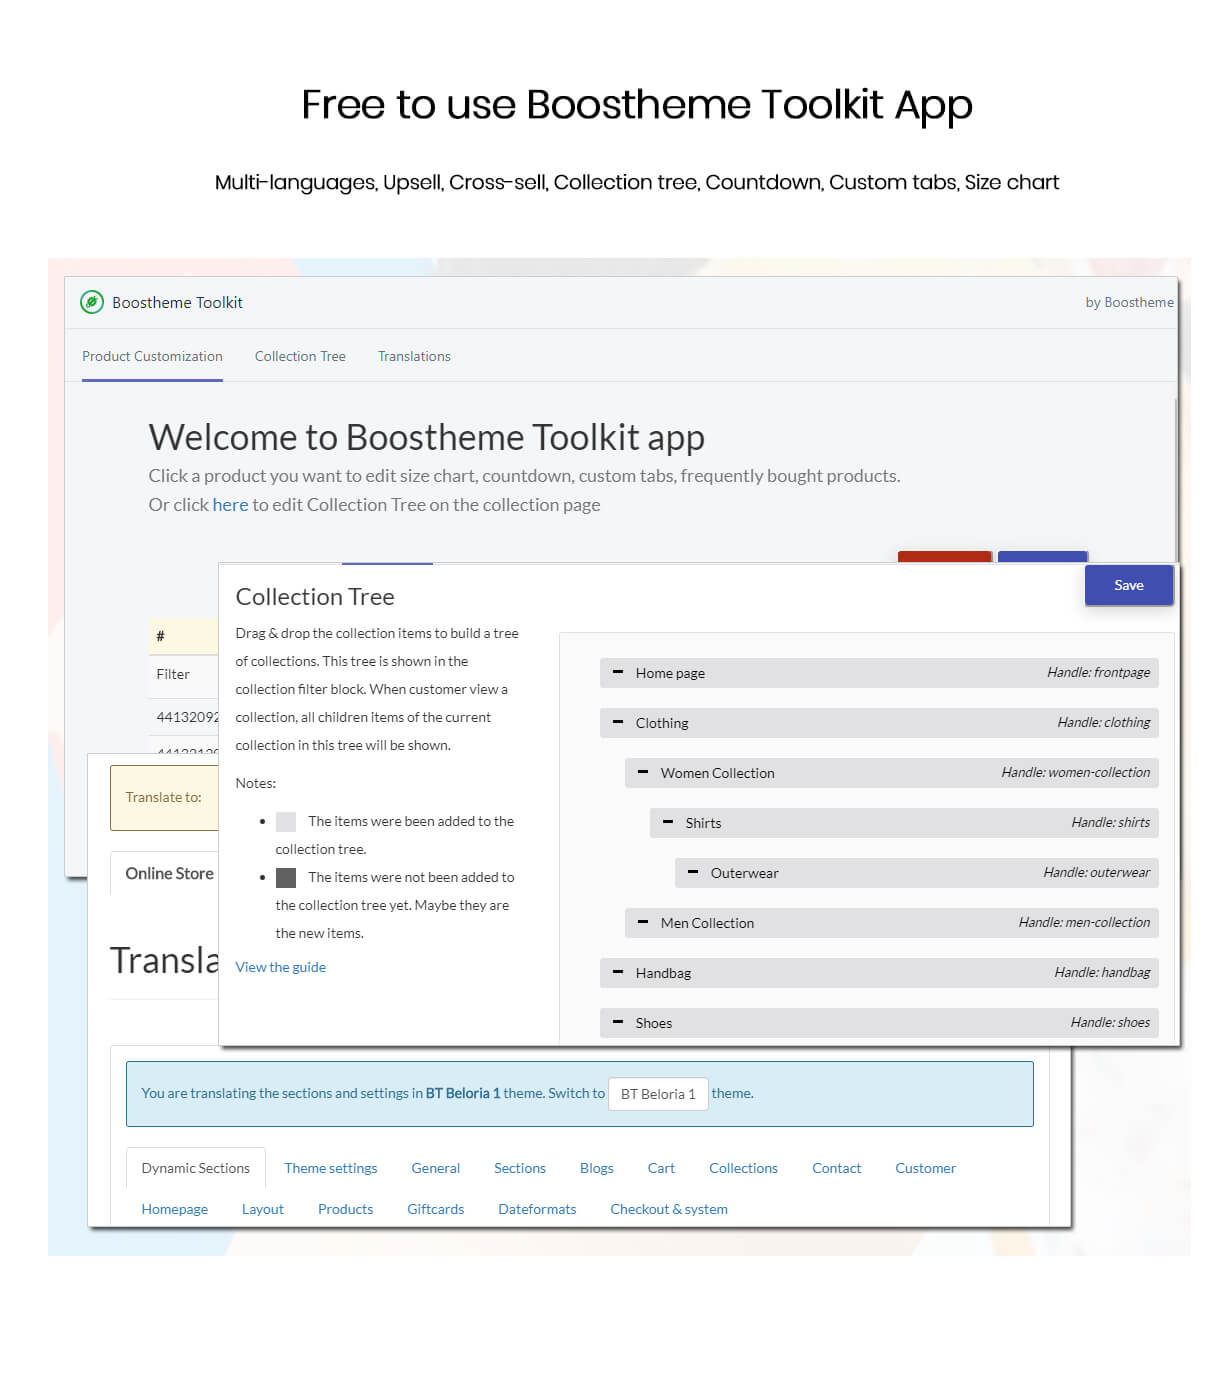 Boostheme Toolkit app